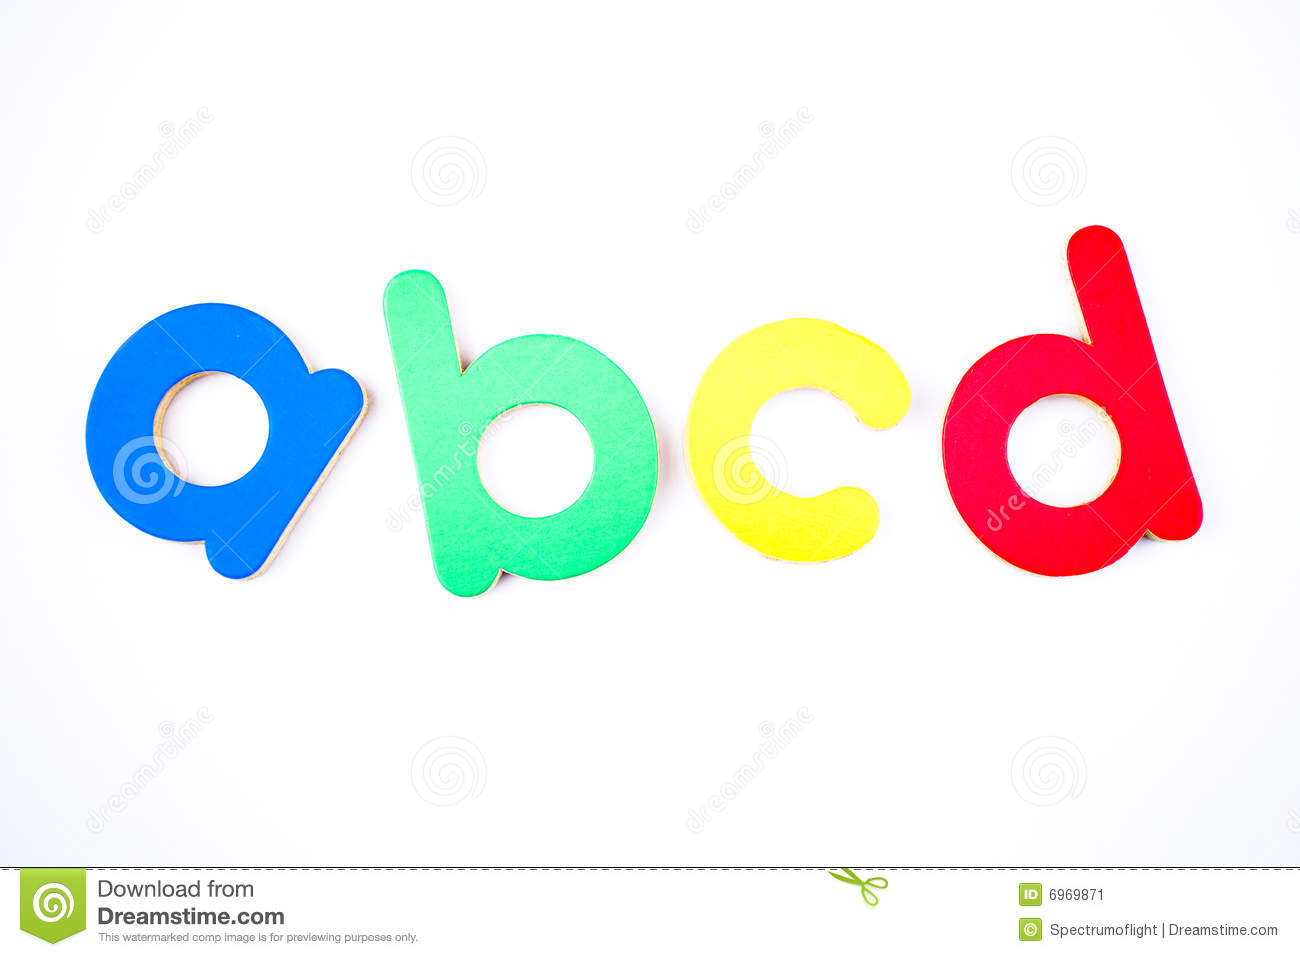 Abcd stock image. Image of script, lettering, fridge ...